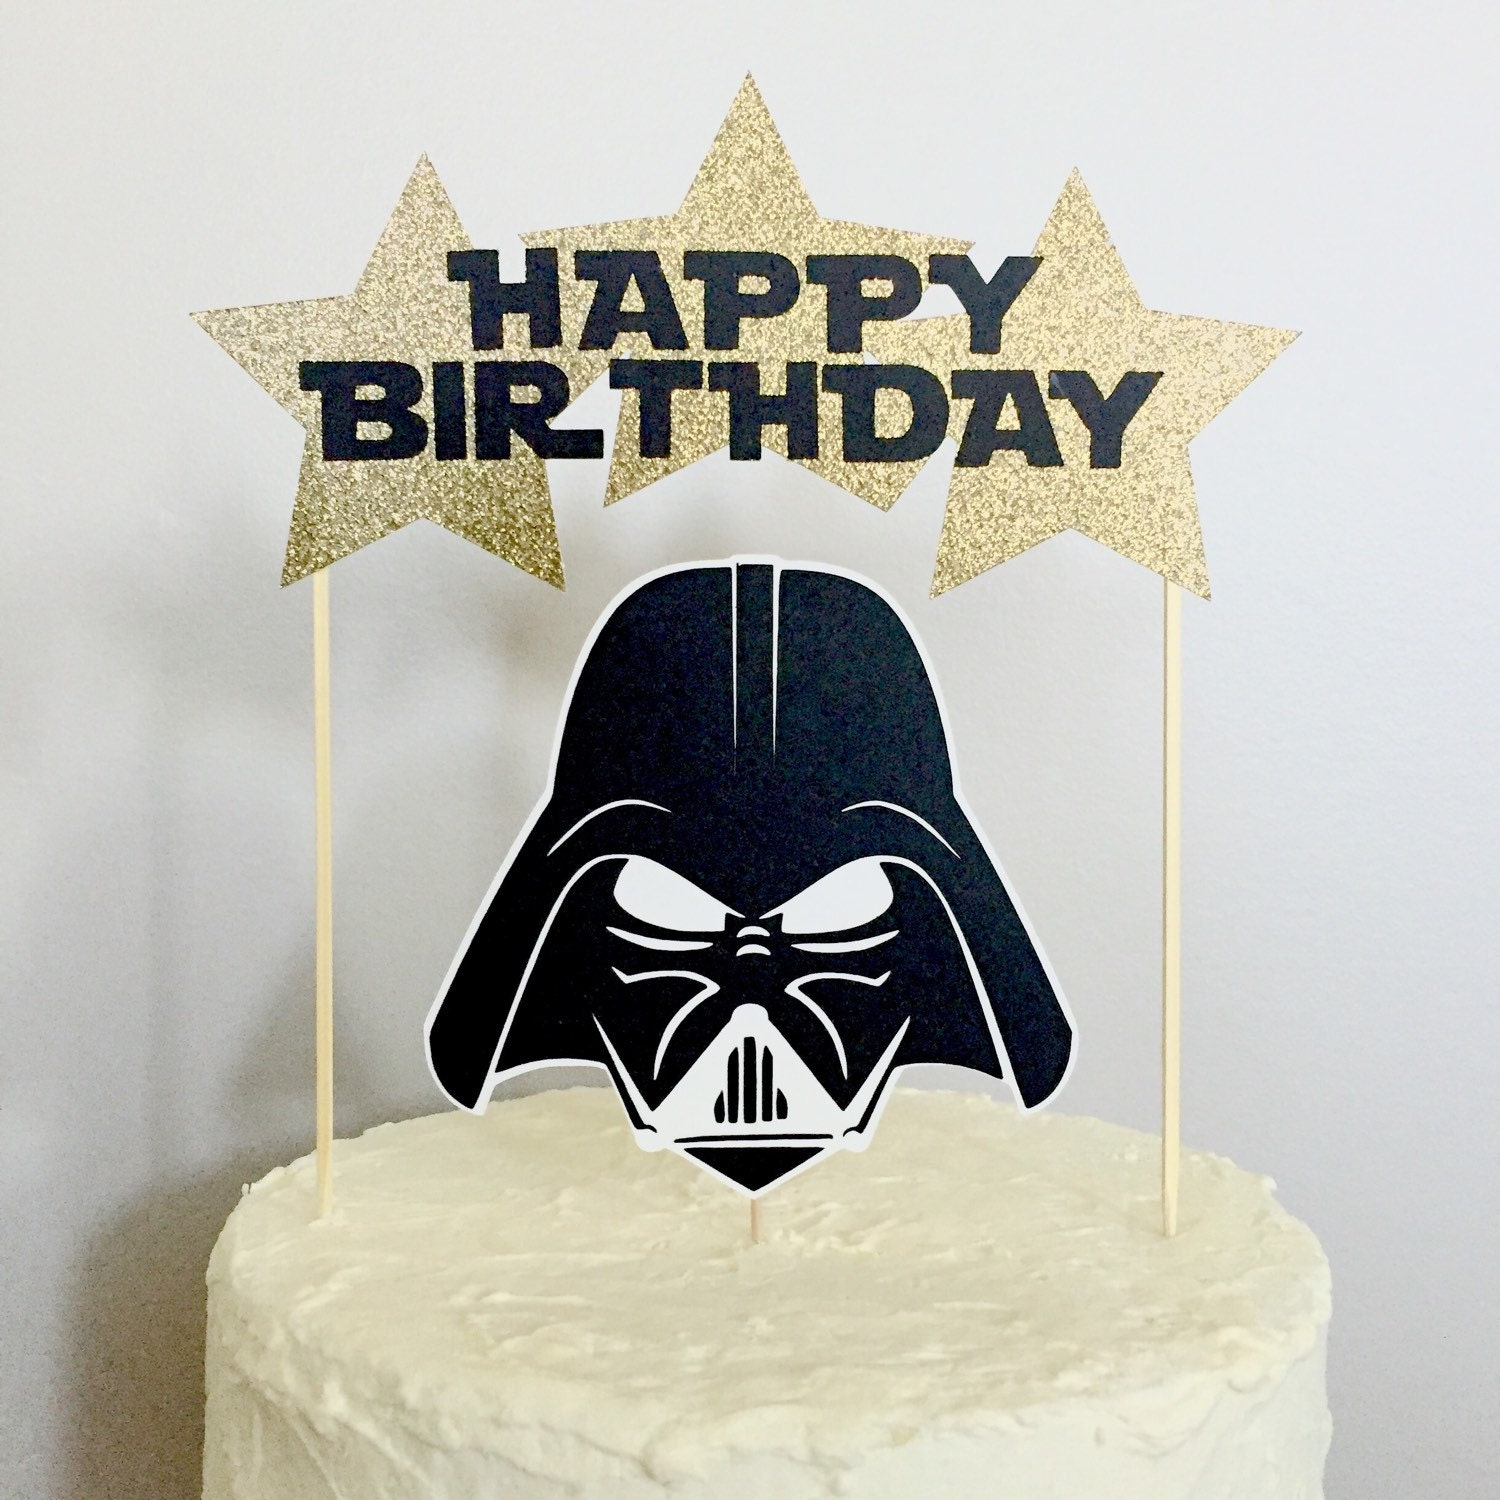 Star Wars Character Happy Birthday Cake Topper